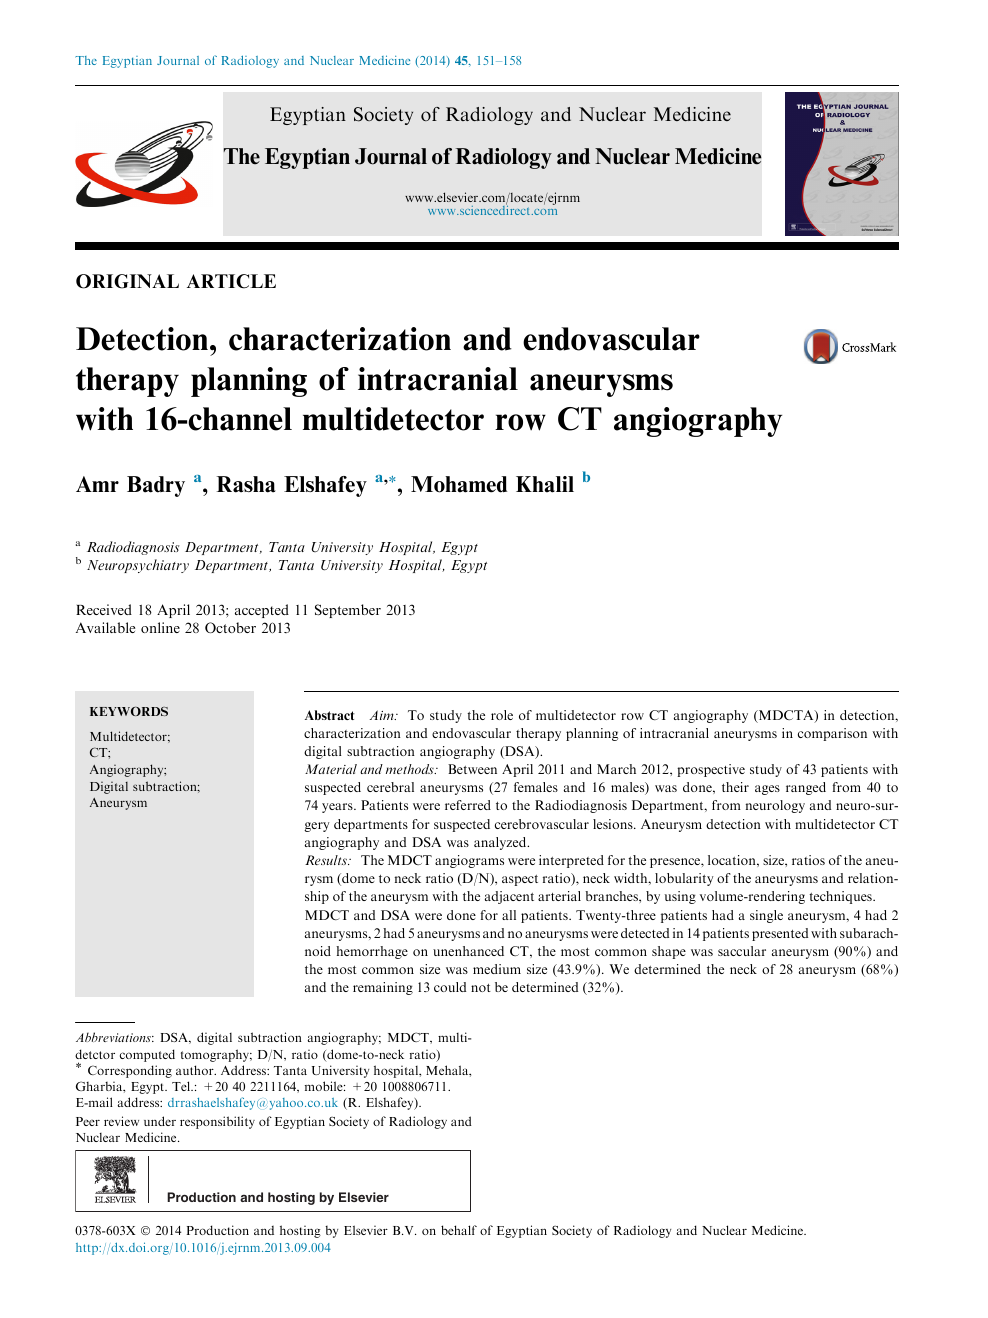 Detection, characterization and endovascular therapy planning of